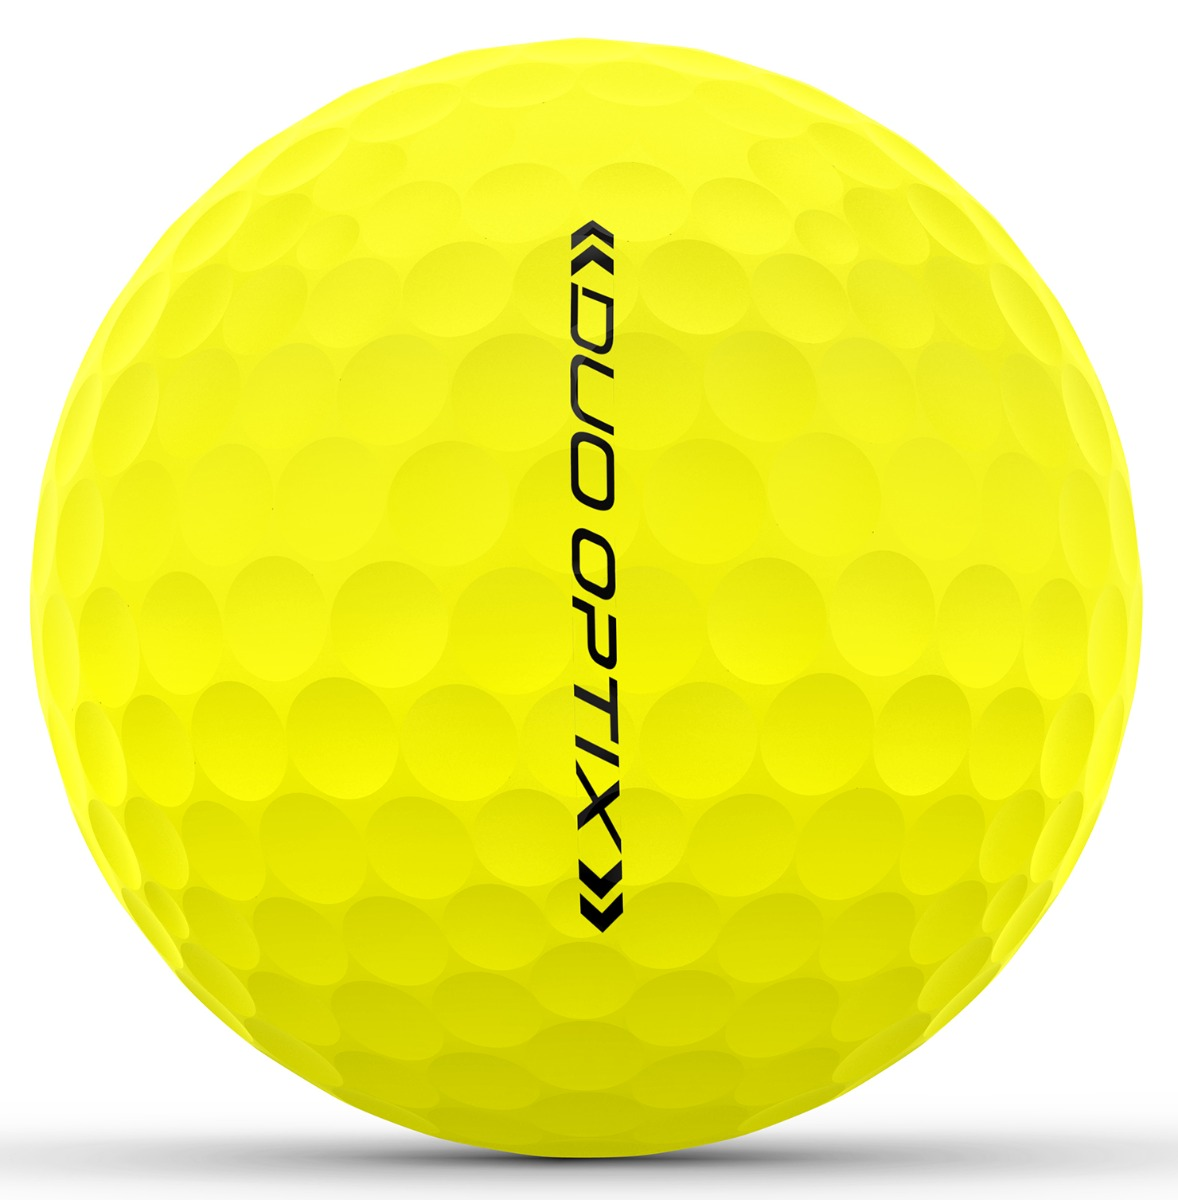 https://www.best4balls.com/pub/media/catalog/product/d/u/duo_optix_yellow_ball_600.jpg